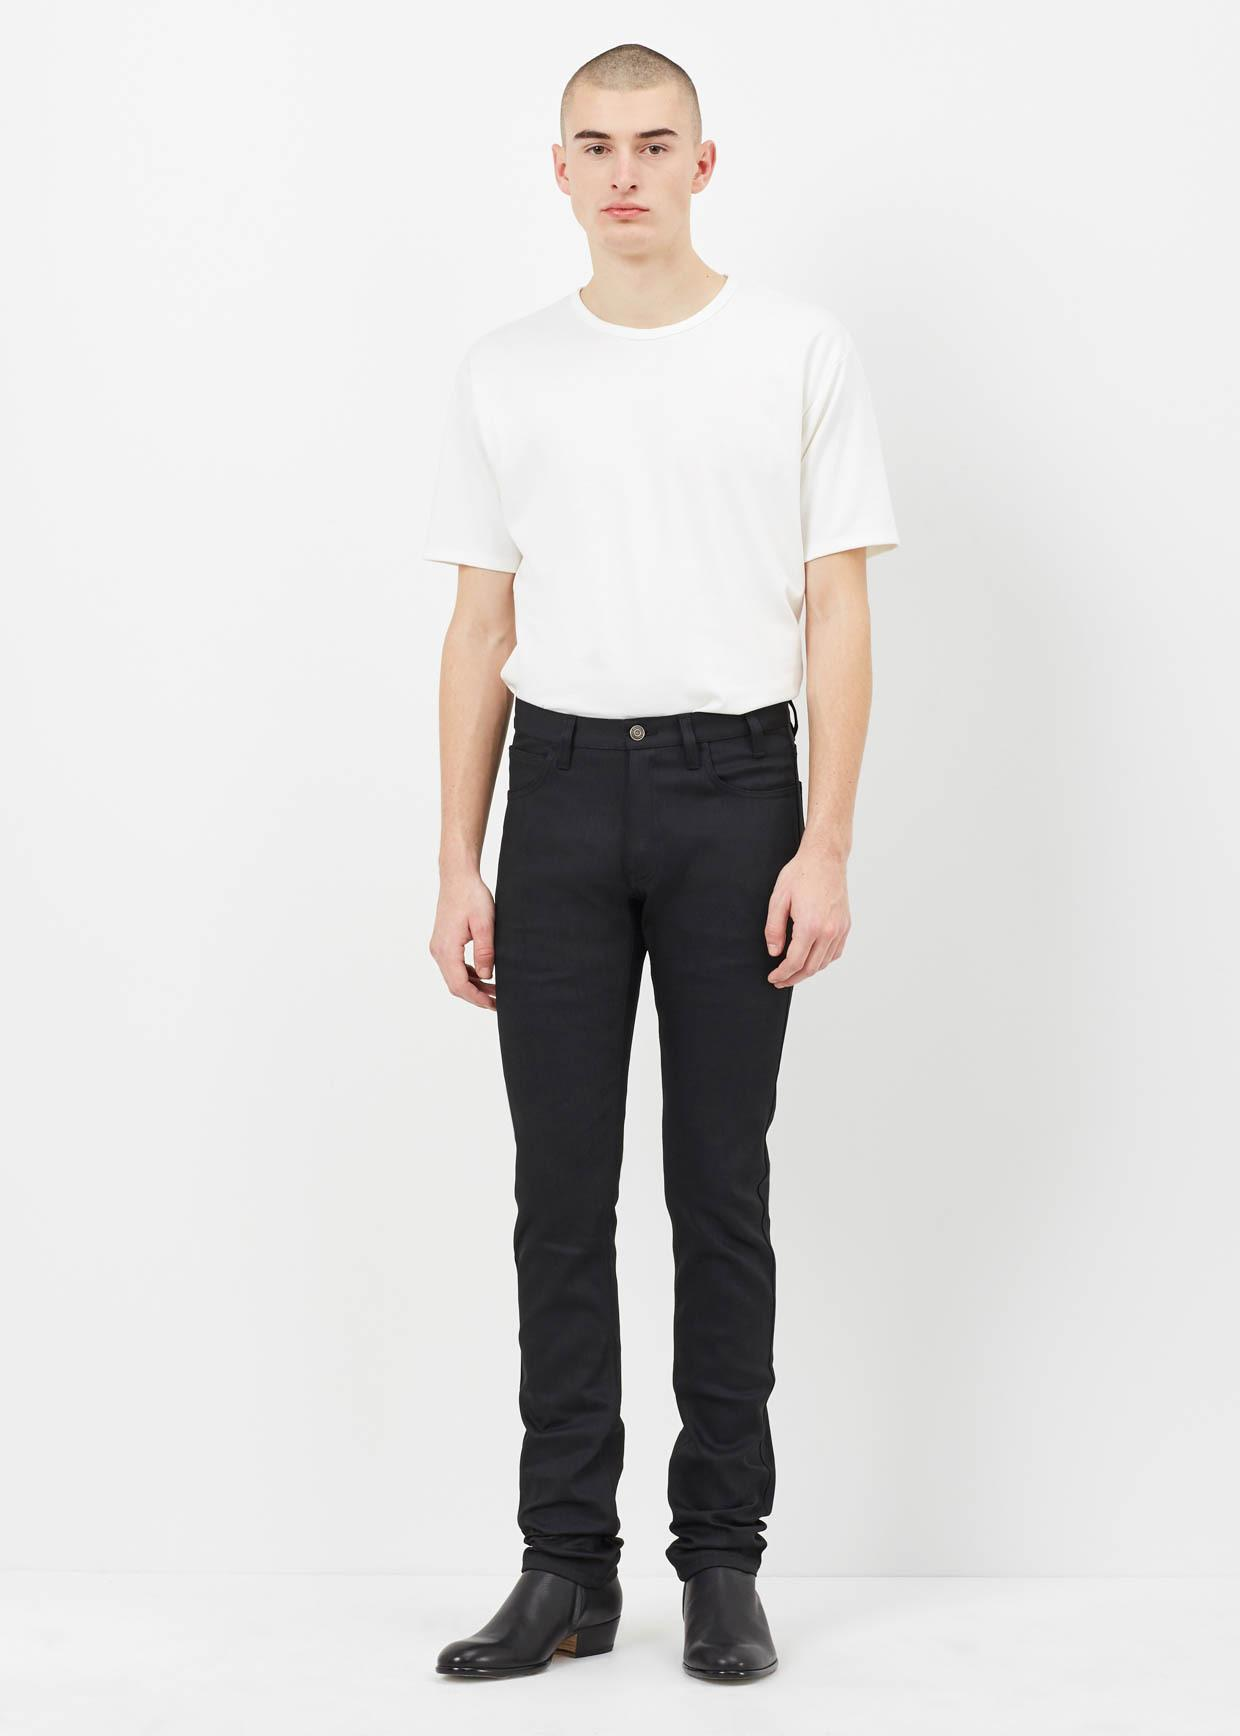 lyst jil sander black lomax jean in black for men. Black Bedroom Furniture Sets. Home Design Ideas